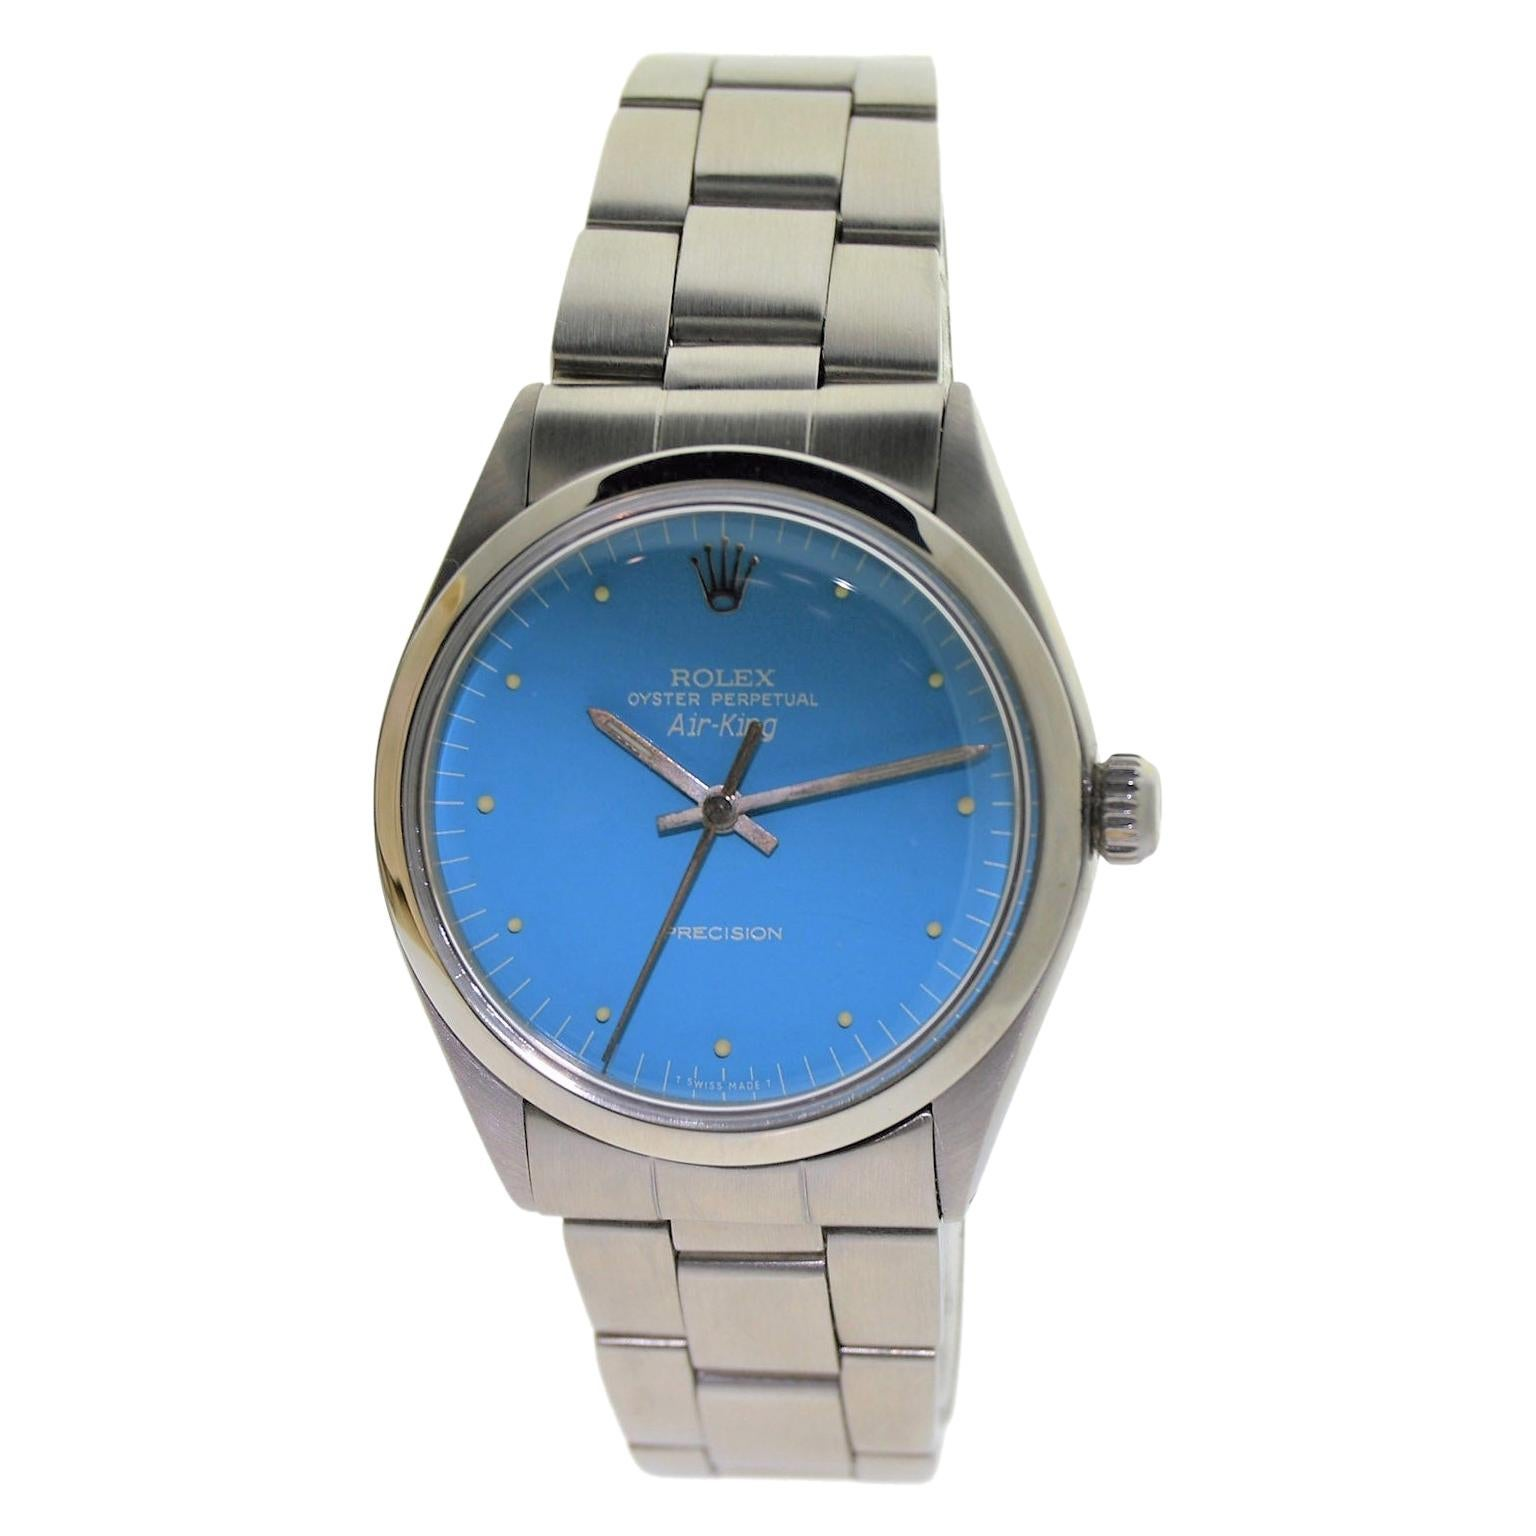 Rolex Stainless Steel Air King Custom Finished Powder Blue Dial, 1970's